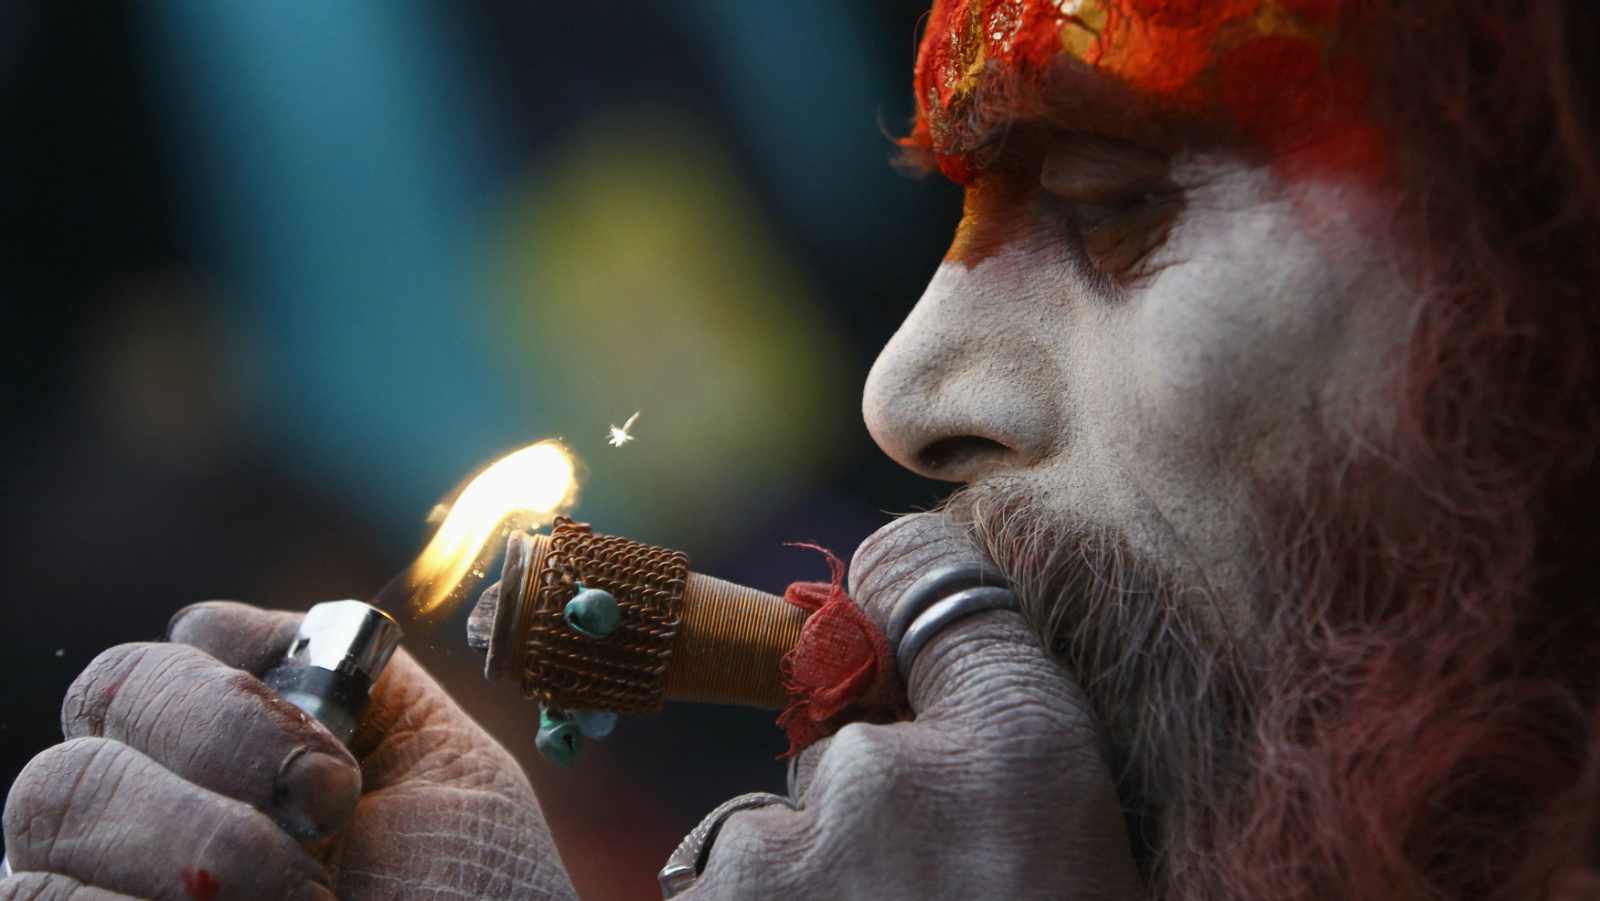 A Hindu holy man, or sadhu, smokes marijuana on a chillum (pipe) at the premises of Pashupatinath Temple during the Shivaratri festival in Kathmandu February 27, 2014. Hindu holy men from Nepal and India come to this temple to take part in the Shivaratri festival. Celebrated by Hindu devotees all over the world, Shivaratri is dedicated to Lord Shiva, and holy men mark the occasion by praying, smoking marijuana or smearing their bodies with ashes.